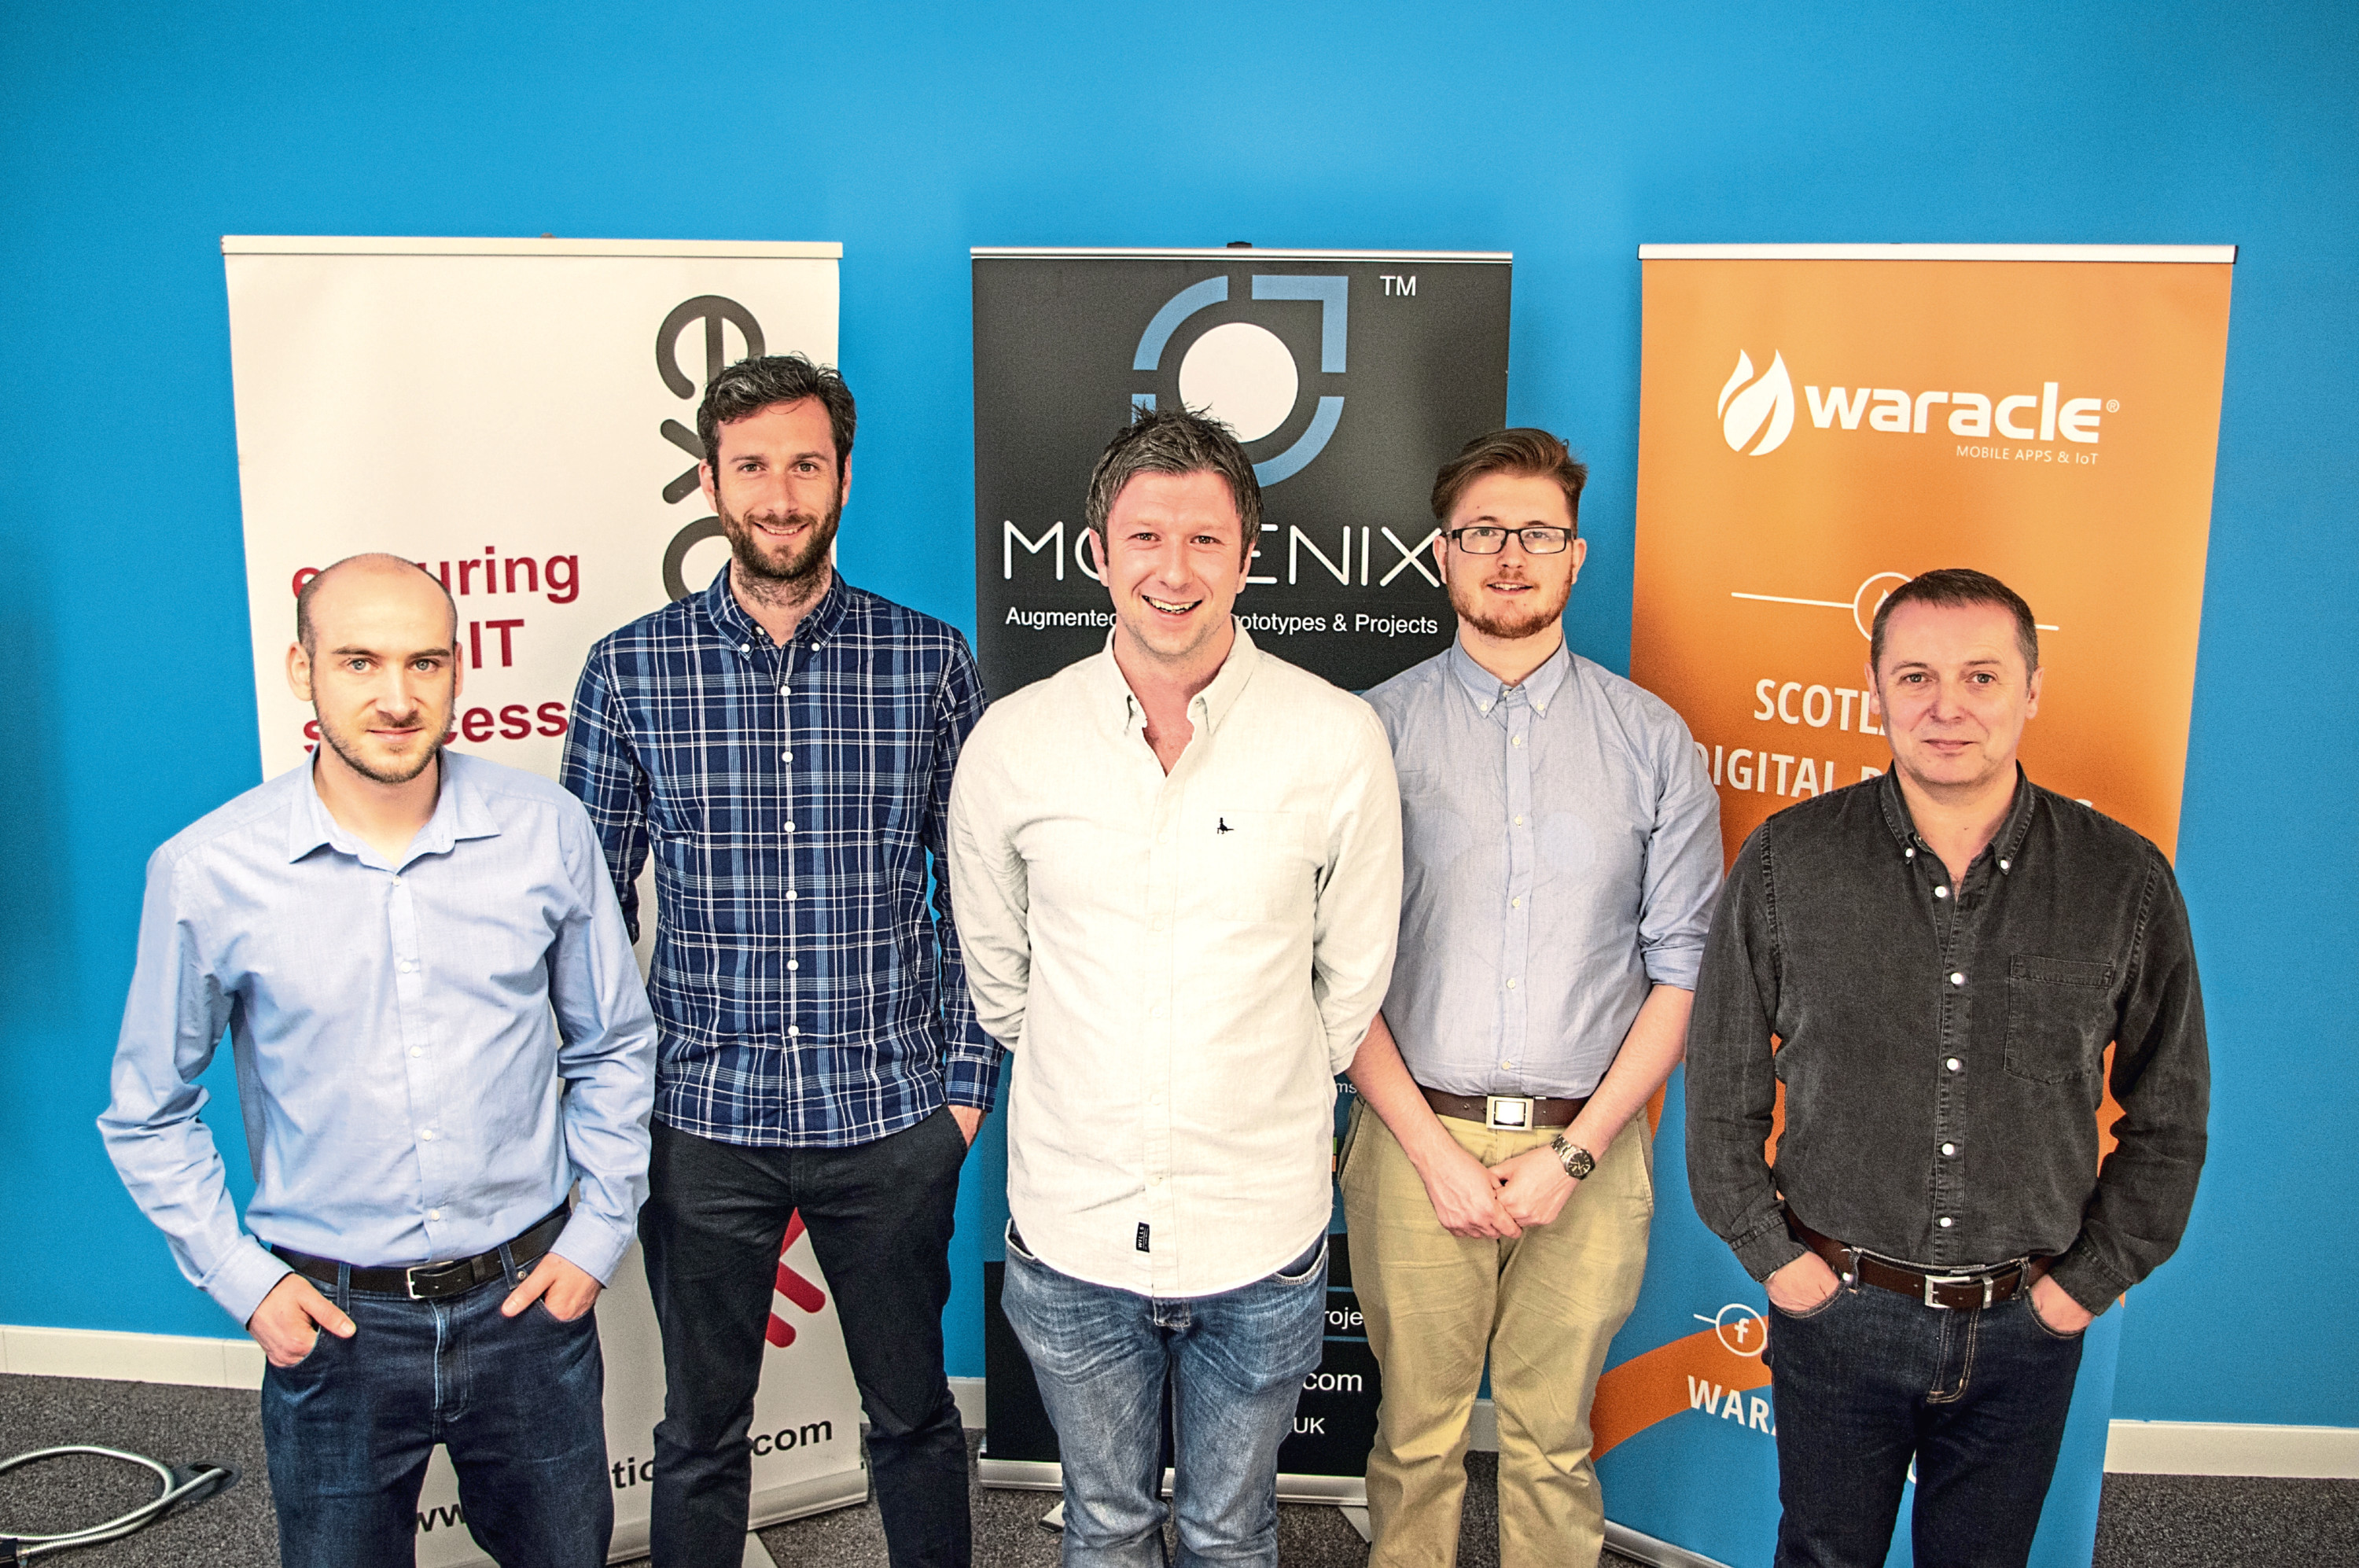 Some of the Waracle team - Mike Wharton, David Romilly, Michael Romilly, Michael Brown and Martin Burke